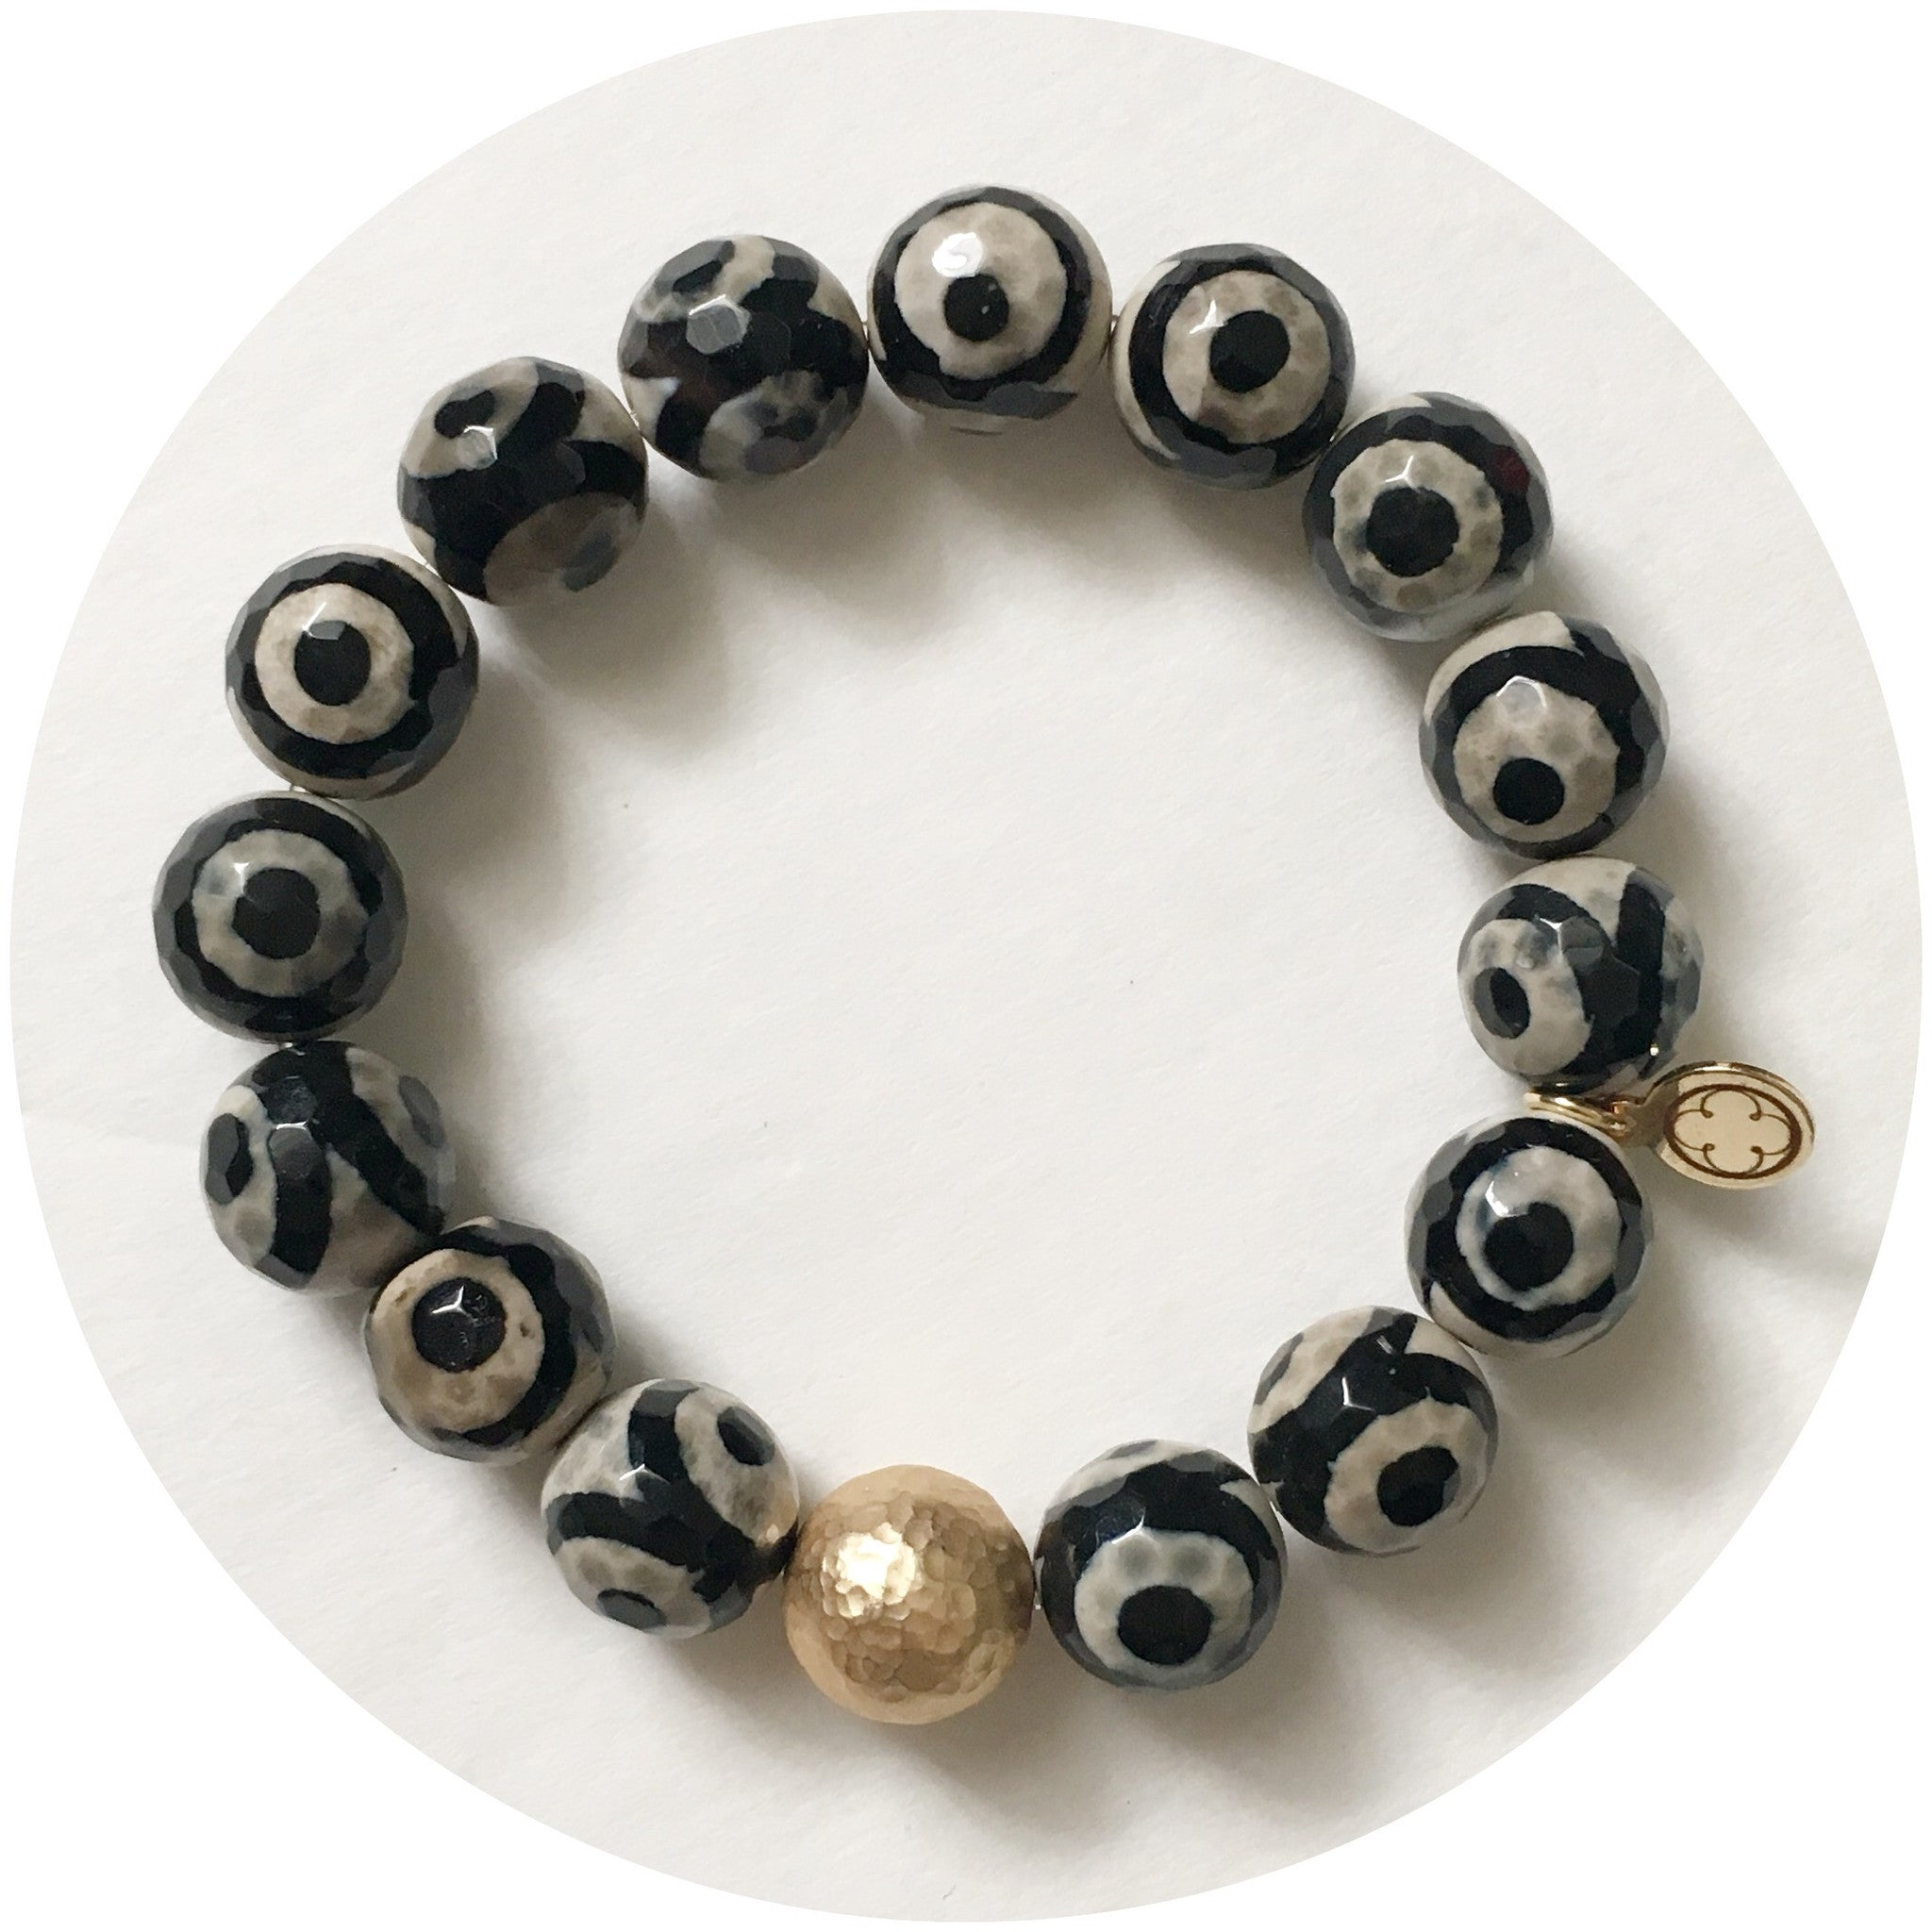 Tibetan Black Eye Agate with Hammered Gold Accent - Oriana Lamarca LLC